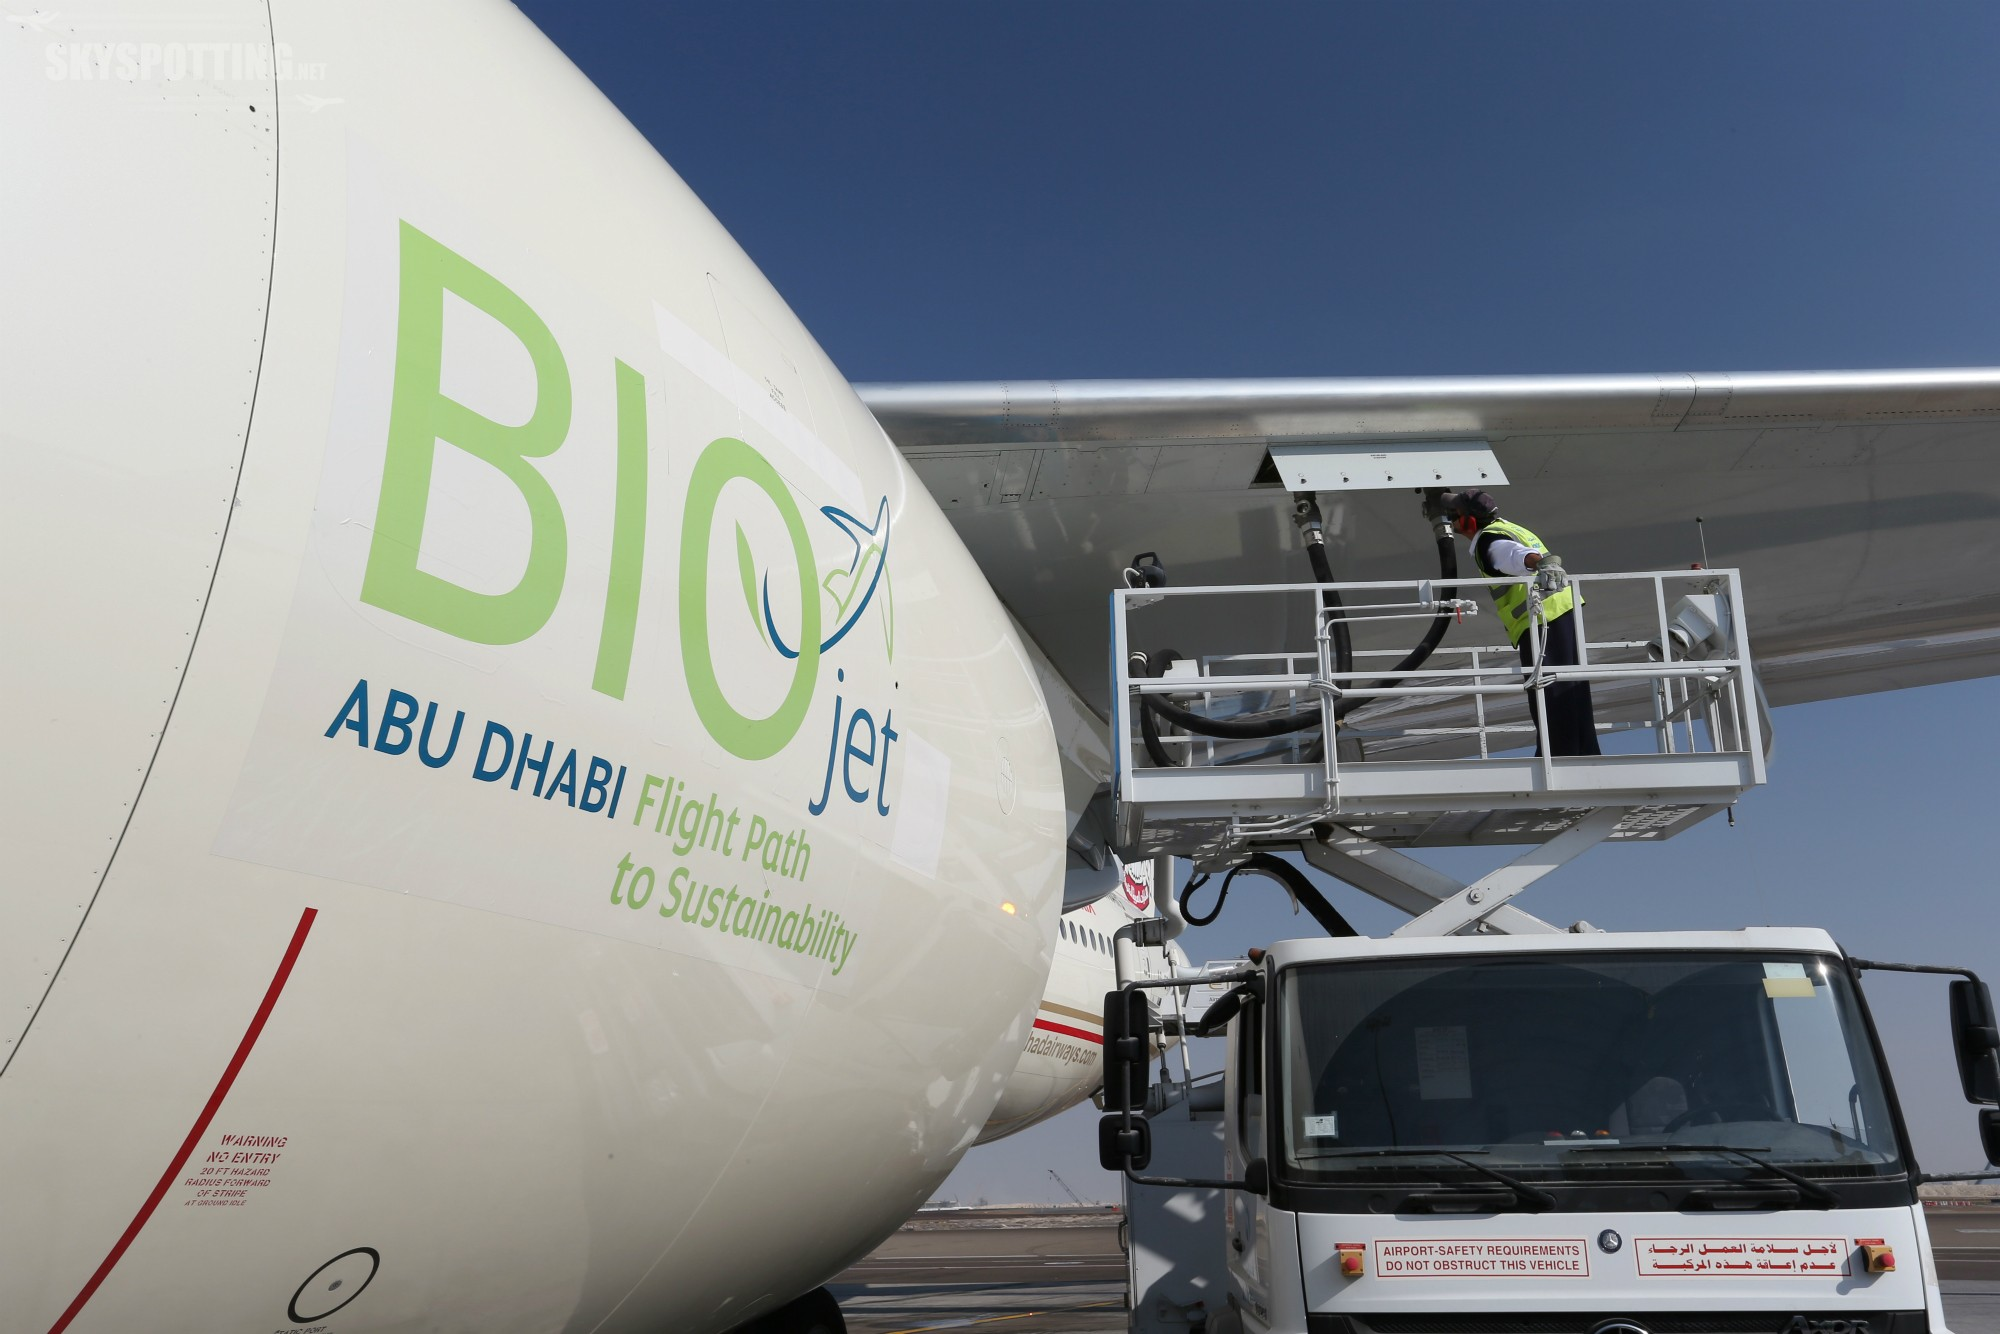 BIOjet Abu Dhabi photo 1